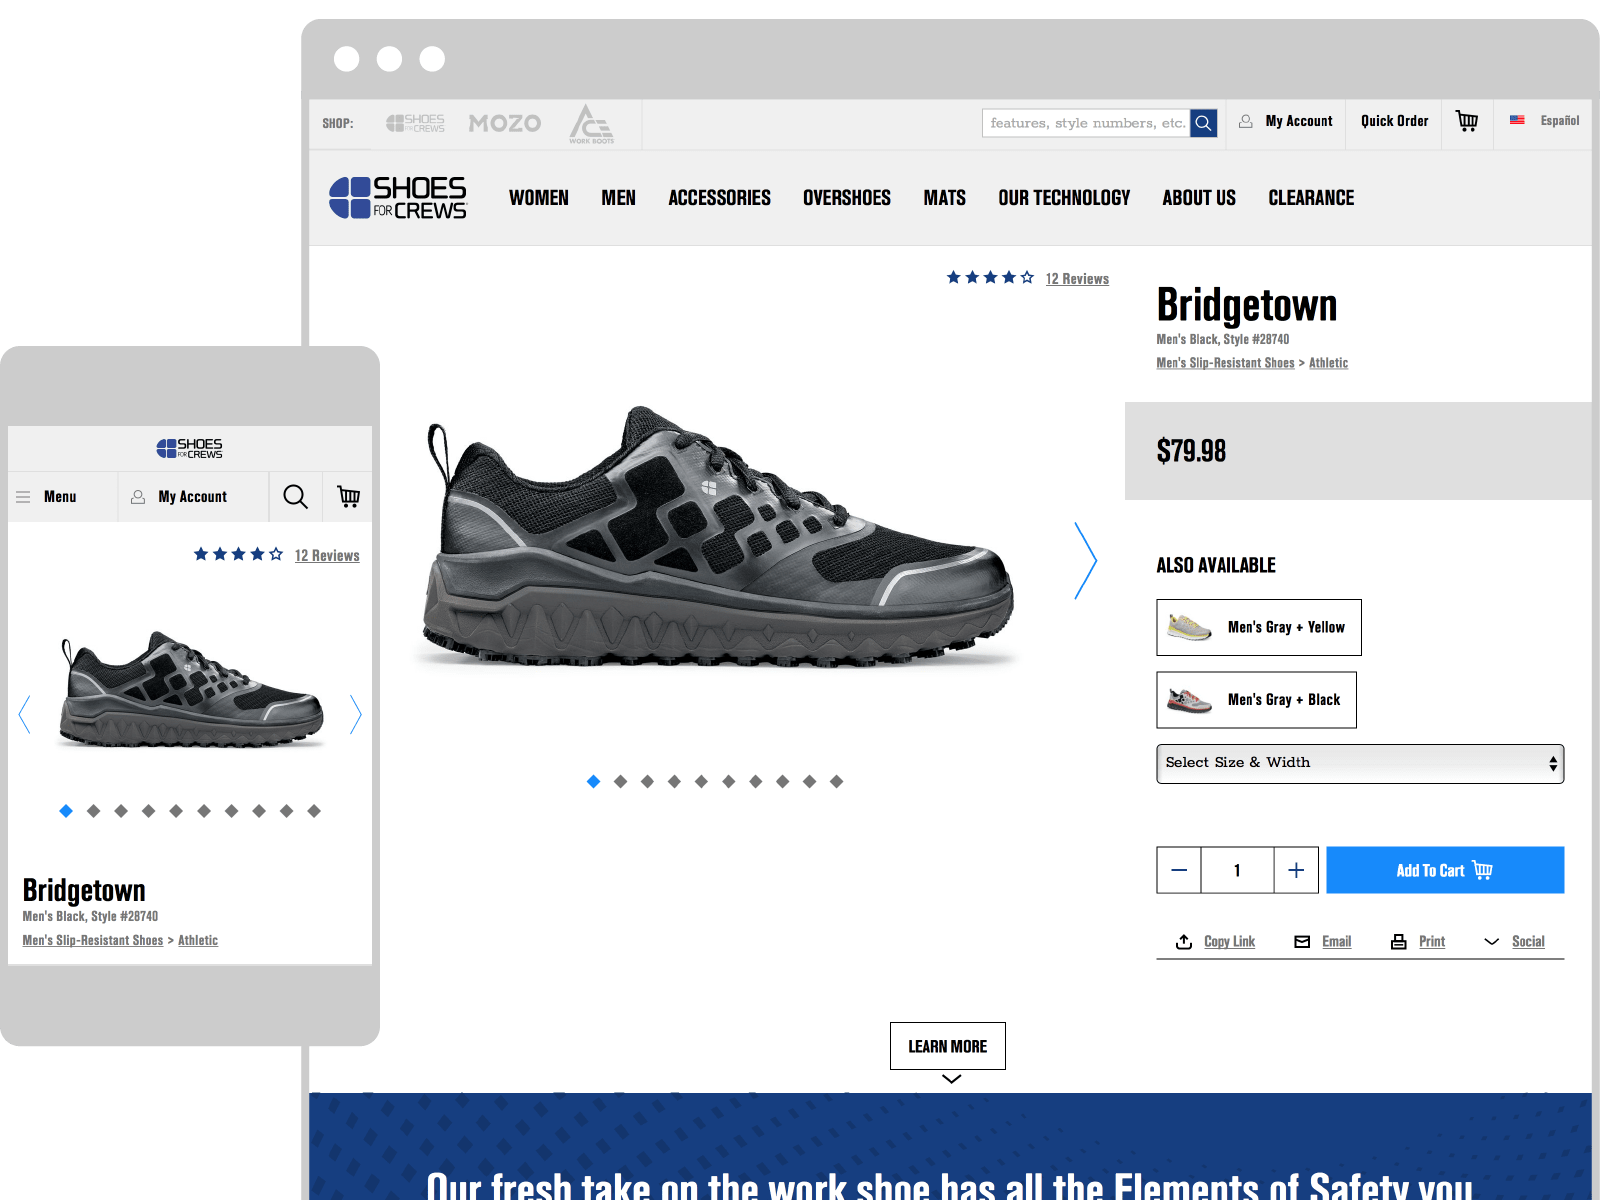 The new Shoes for Crews website.